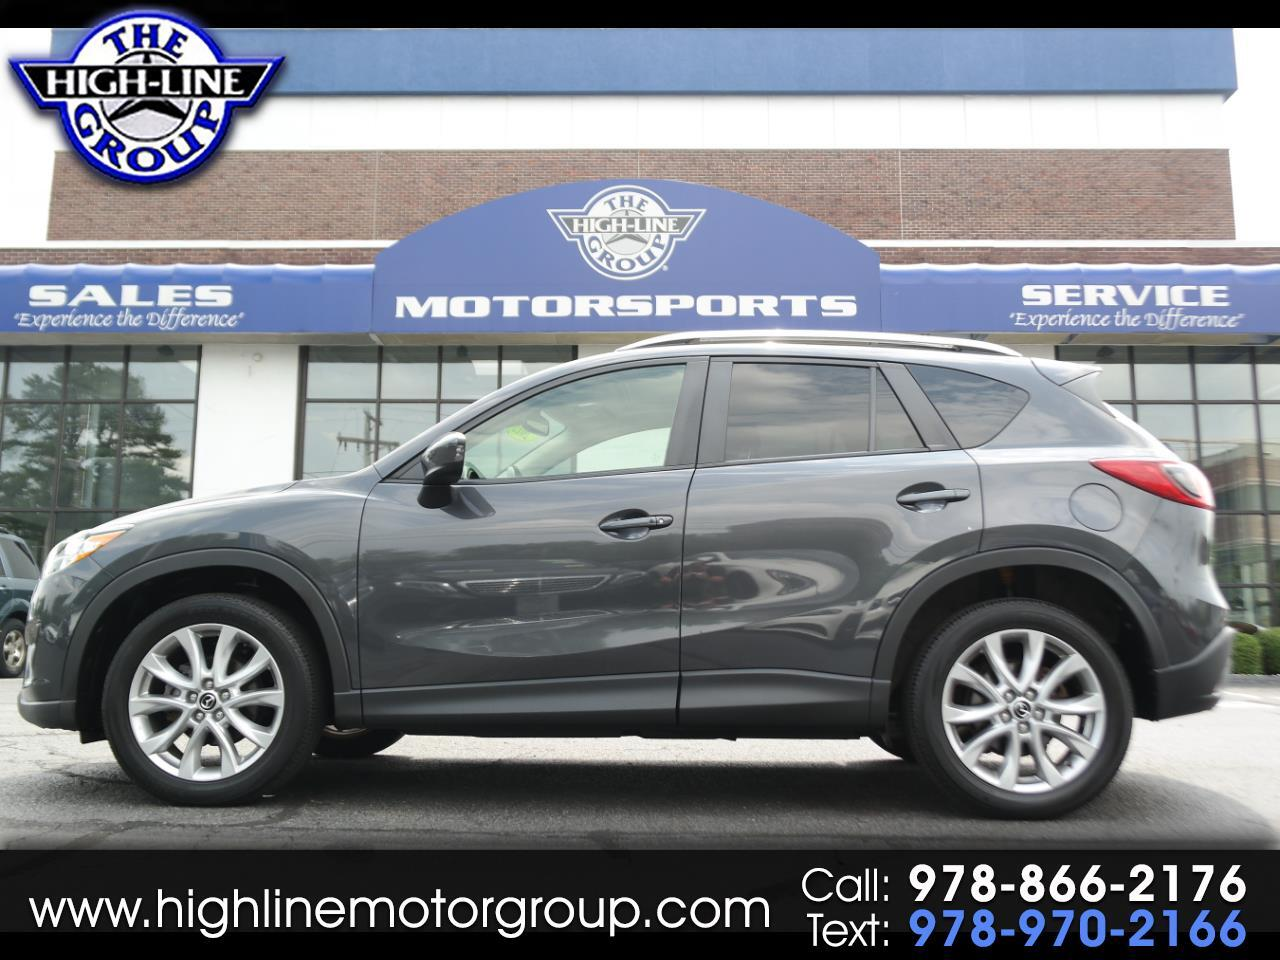 2015 Mazda CX-5 AWD 4dr Auto Grand Touring